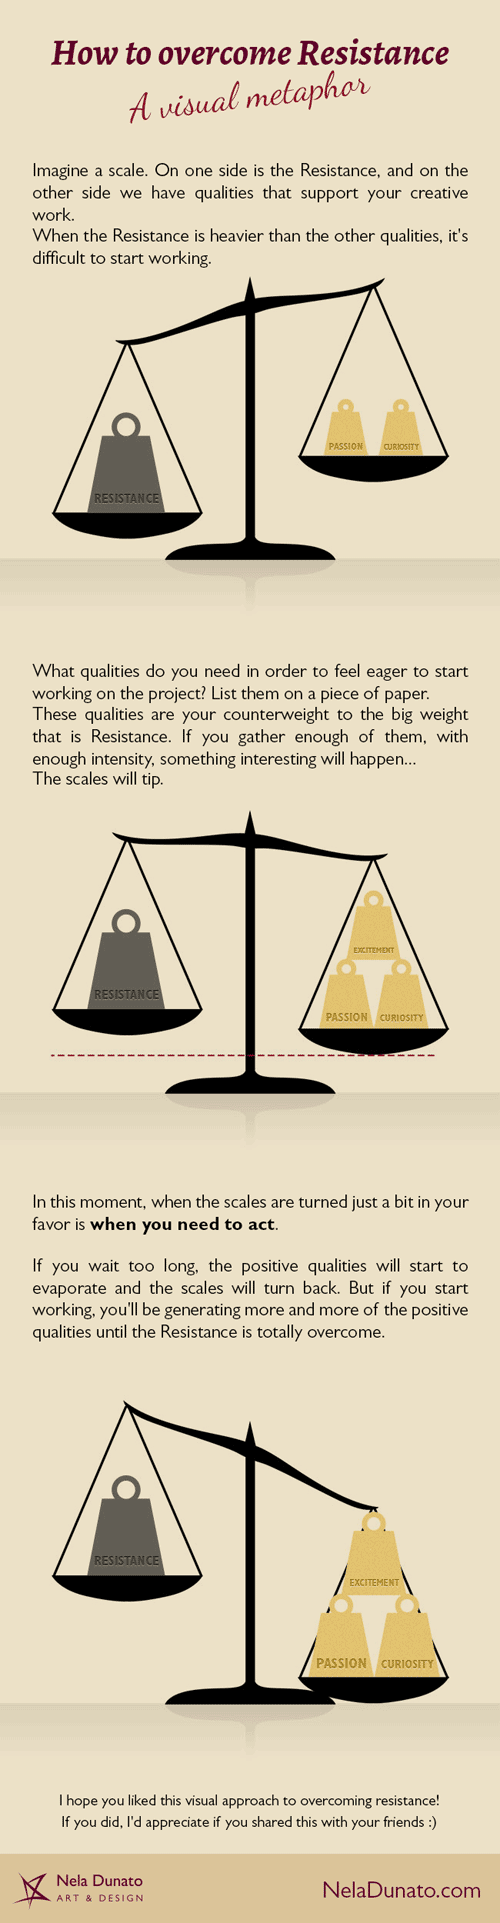 How to overcome Resistance: A visual metaphor